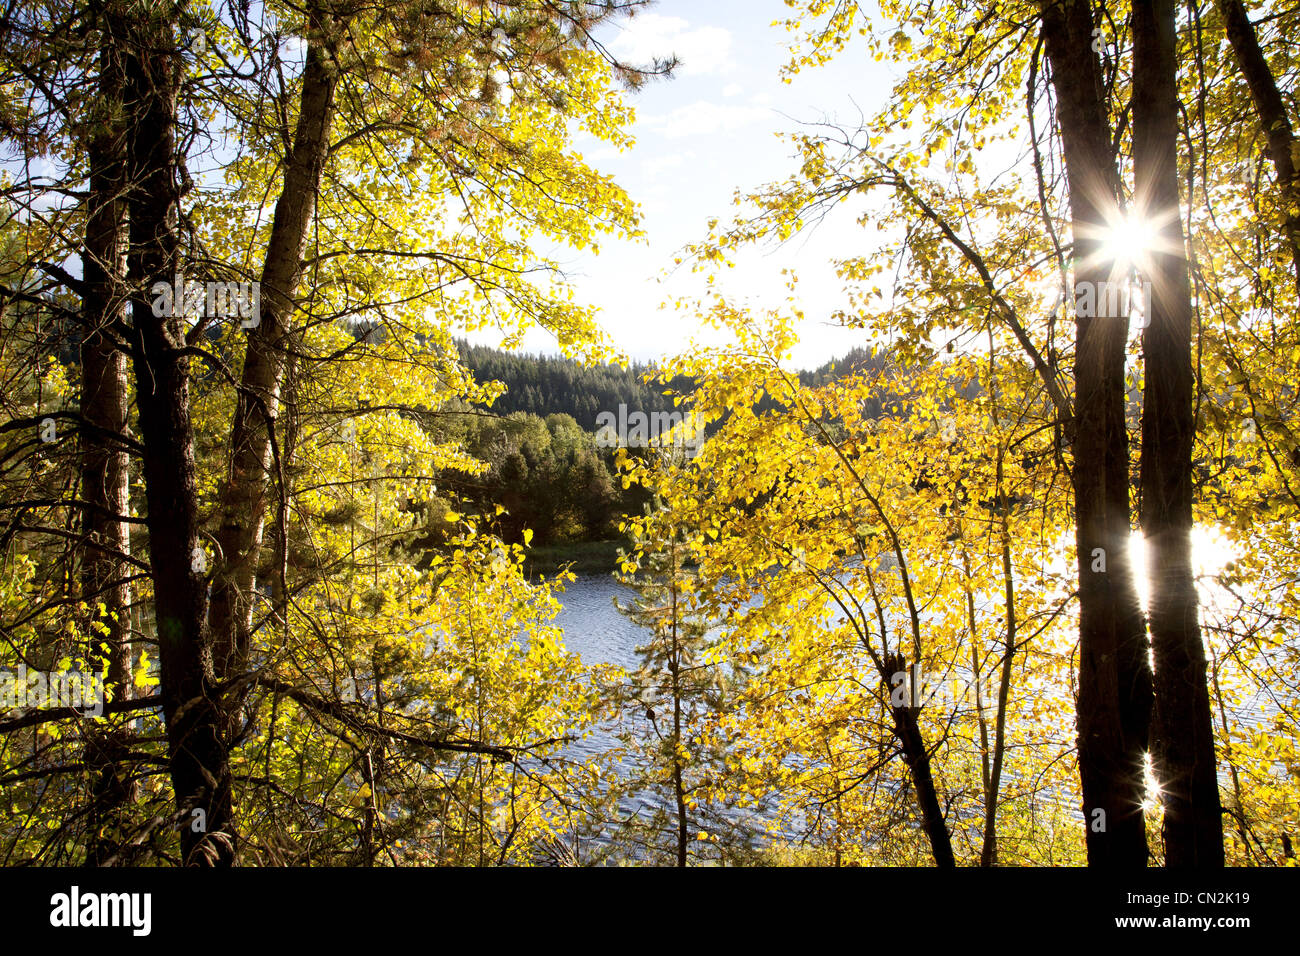 Yellow Autumn Leaves in Forest With Lake in Background, Idaho, USA - Stock Image